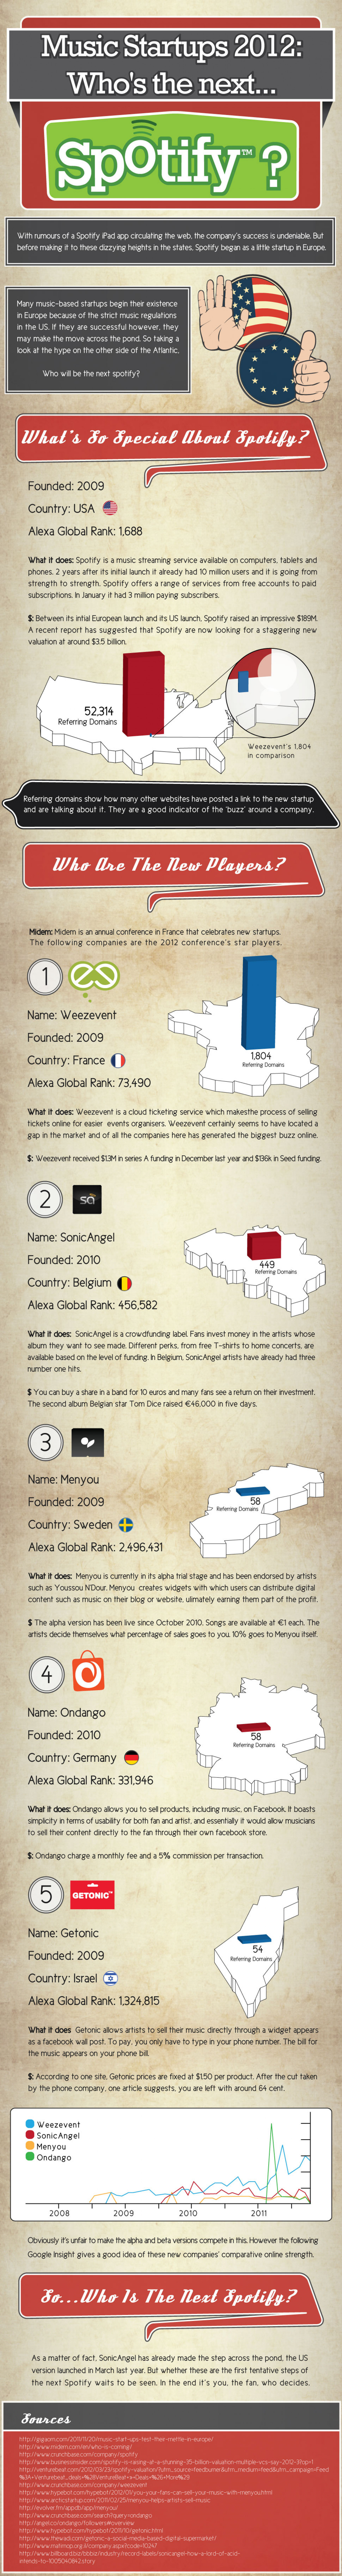 Music Startups 2012: Who's the next Spotify? Infographic